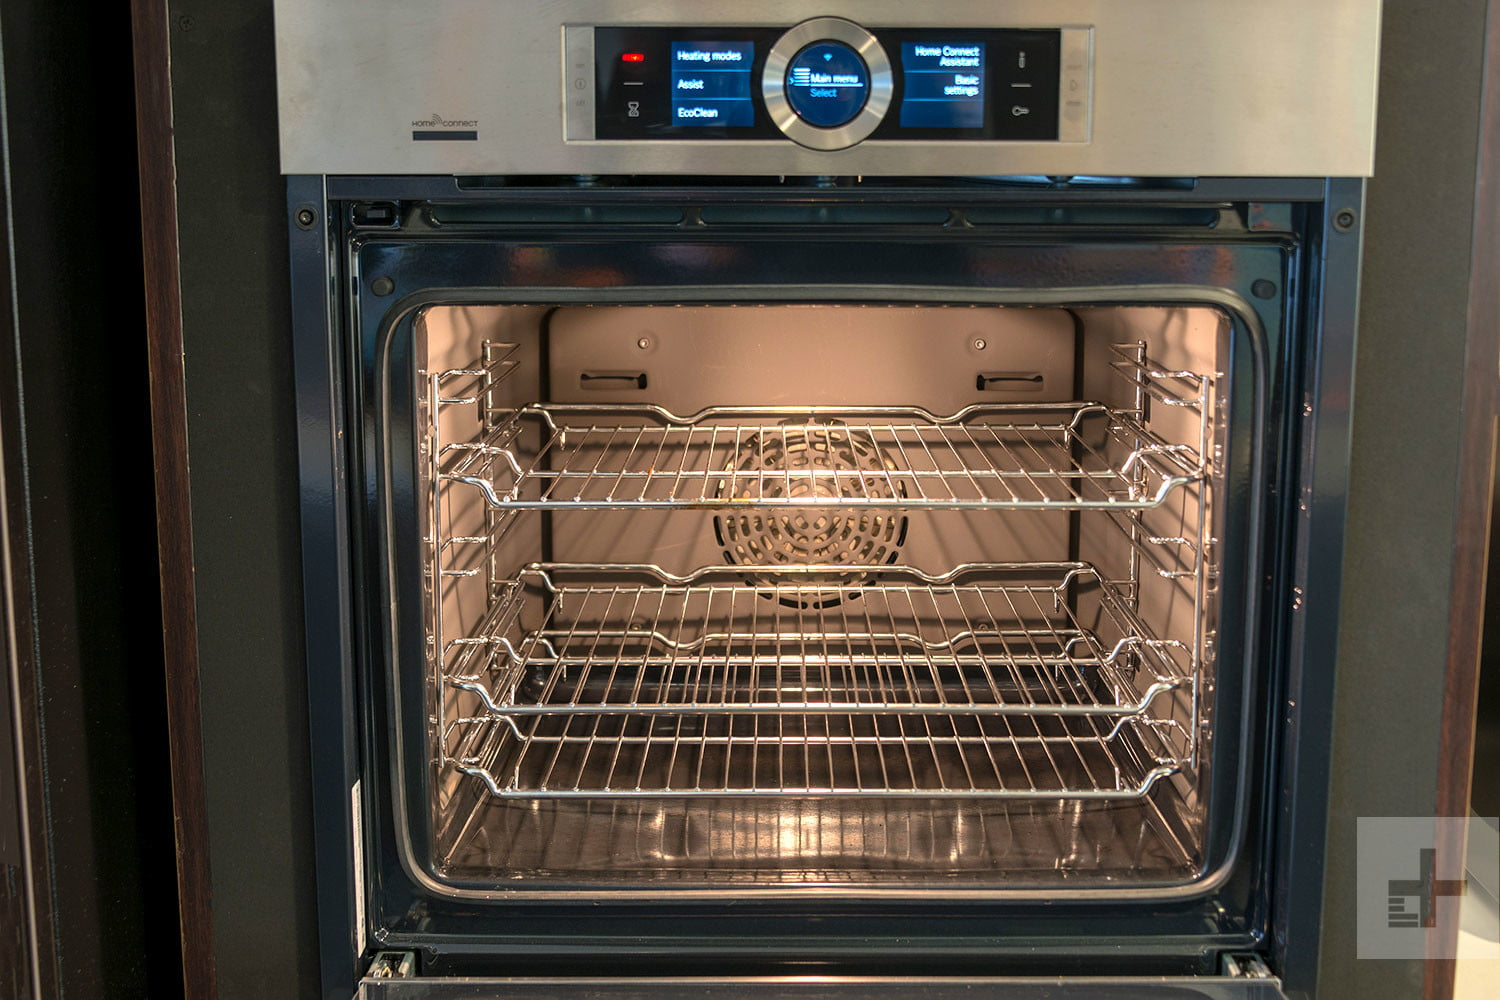 Bosch Wall Oven Series 500 Hbe5452uc